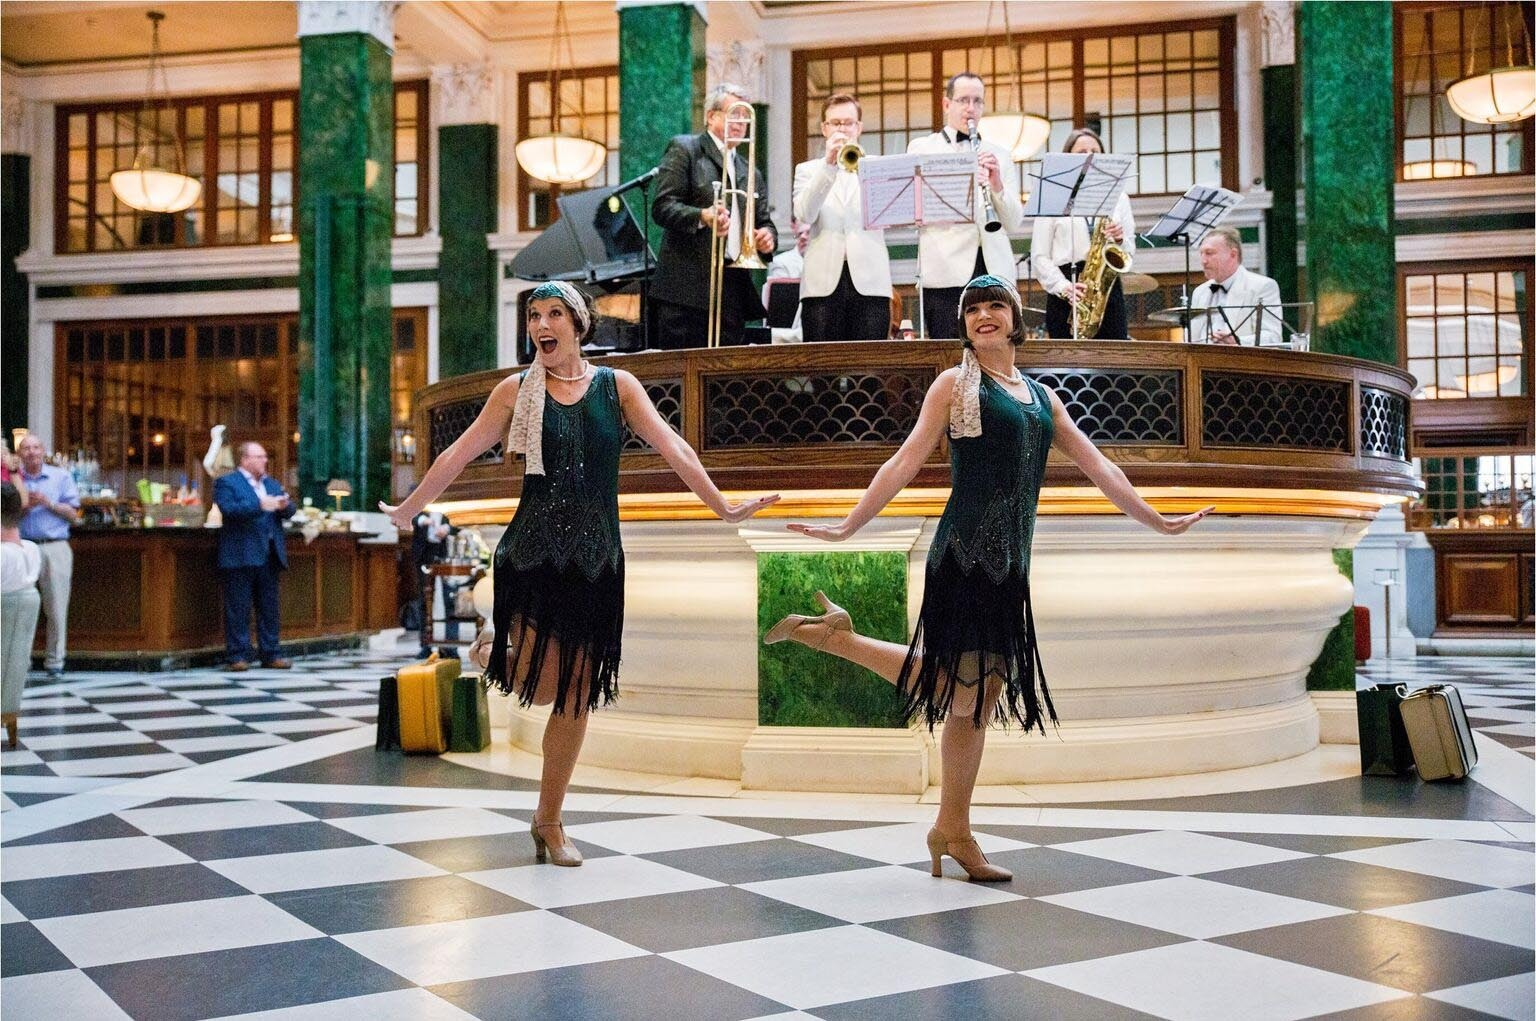 There will be music and dance to celebrate 1930s America at the LiveFriday event